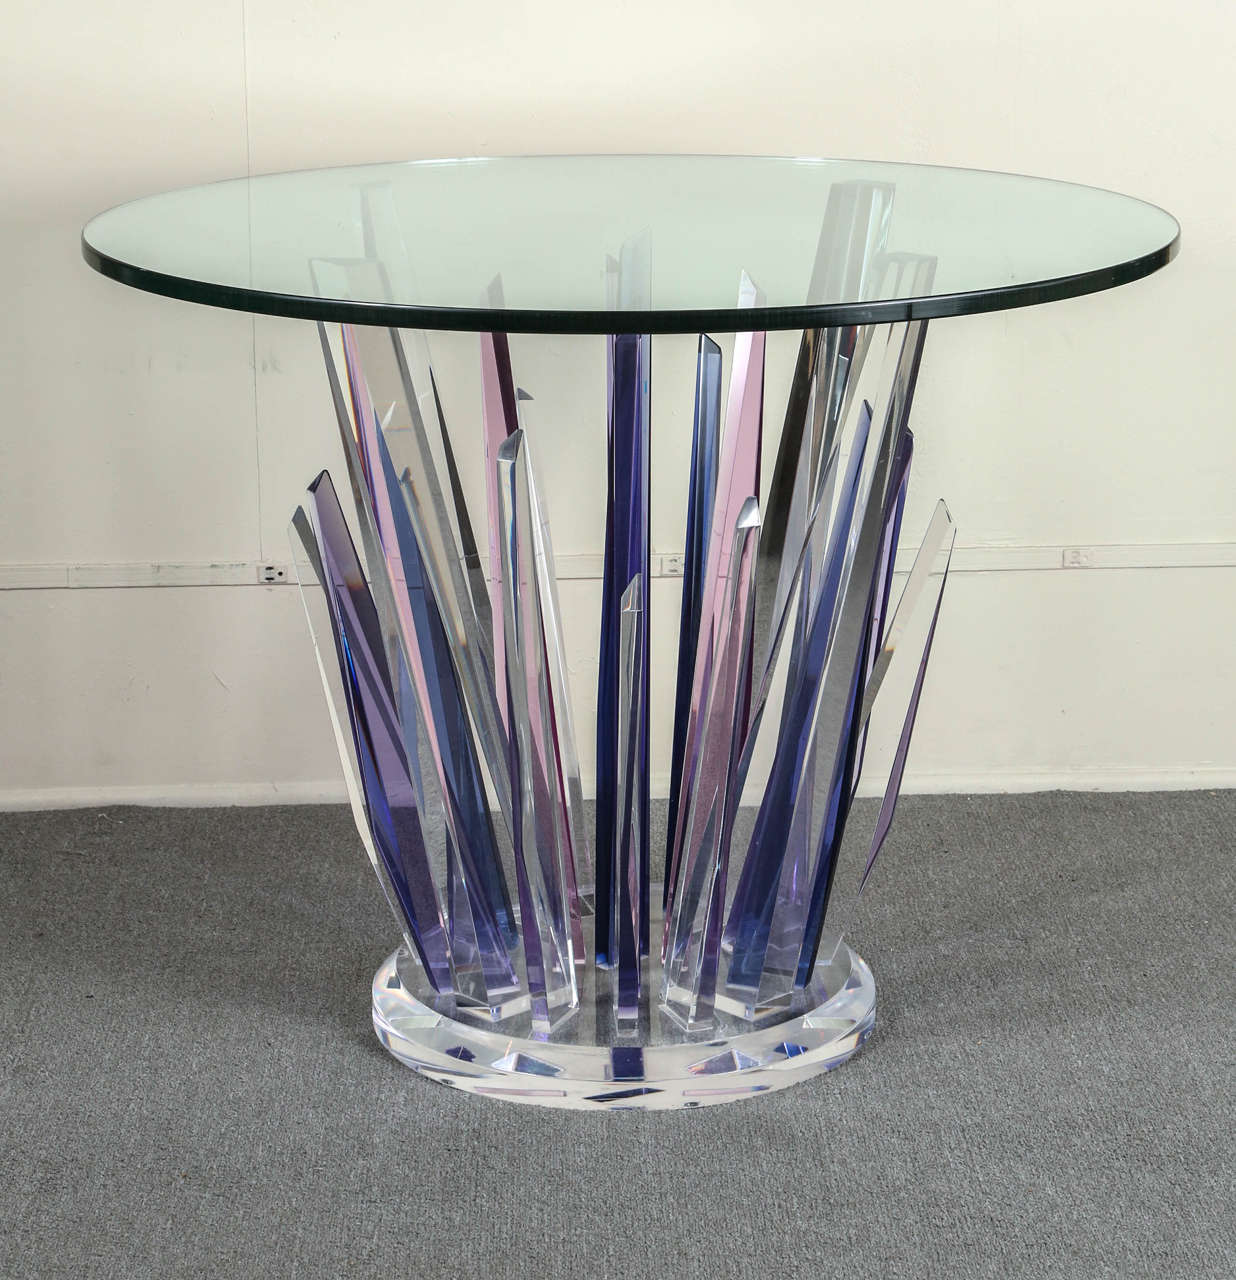 This stunning stalagmite lucite table is made up of clear,  magenta, pink 